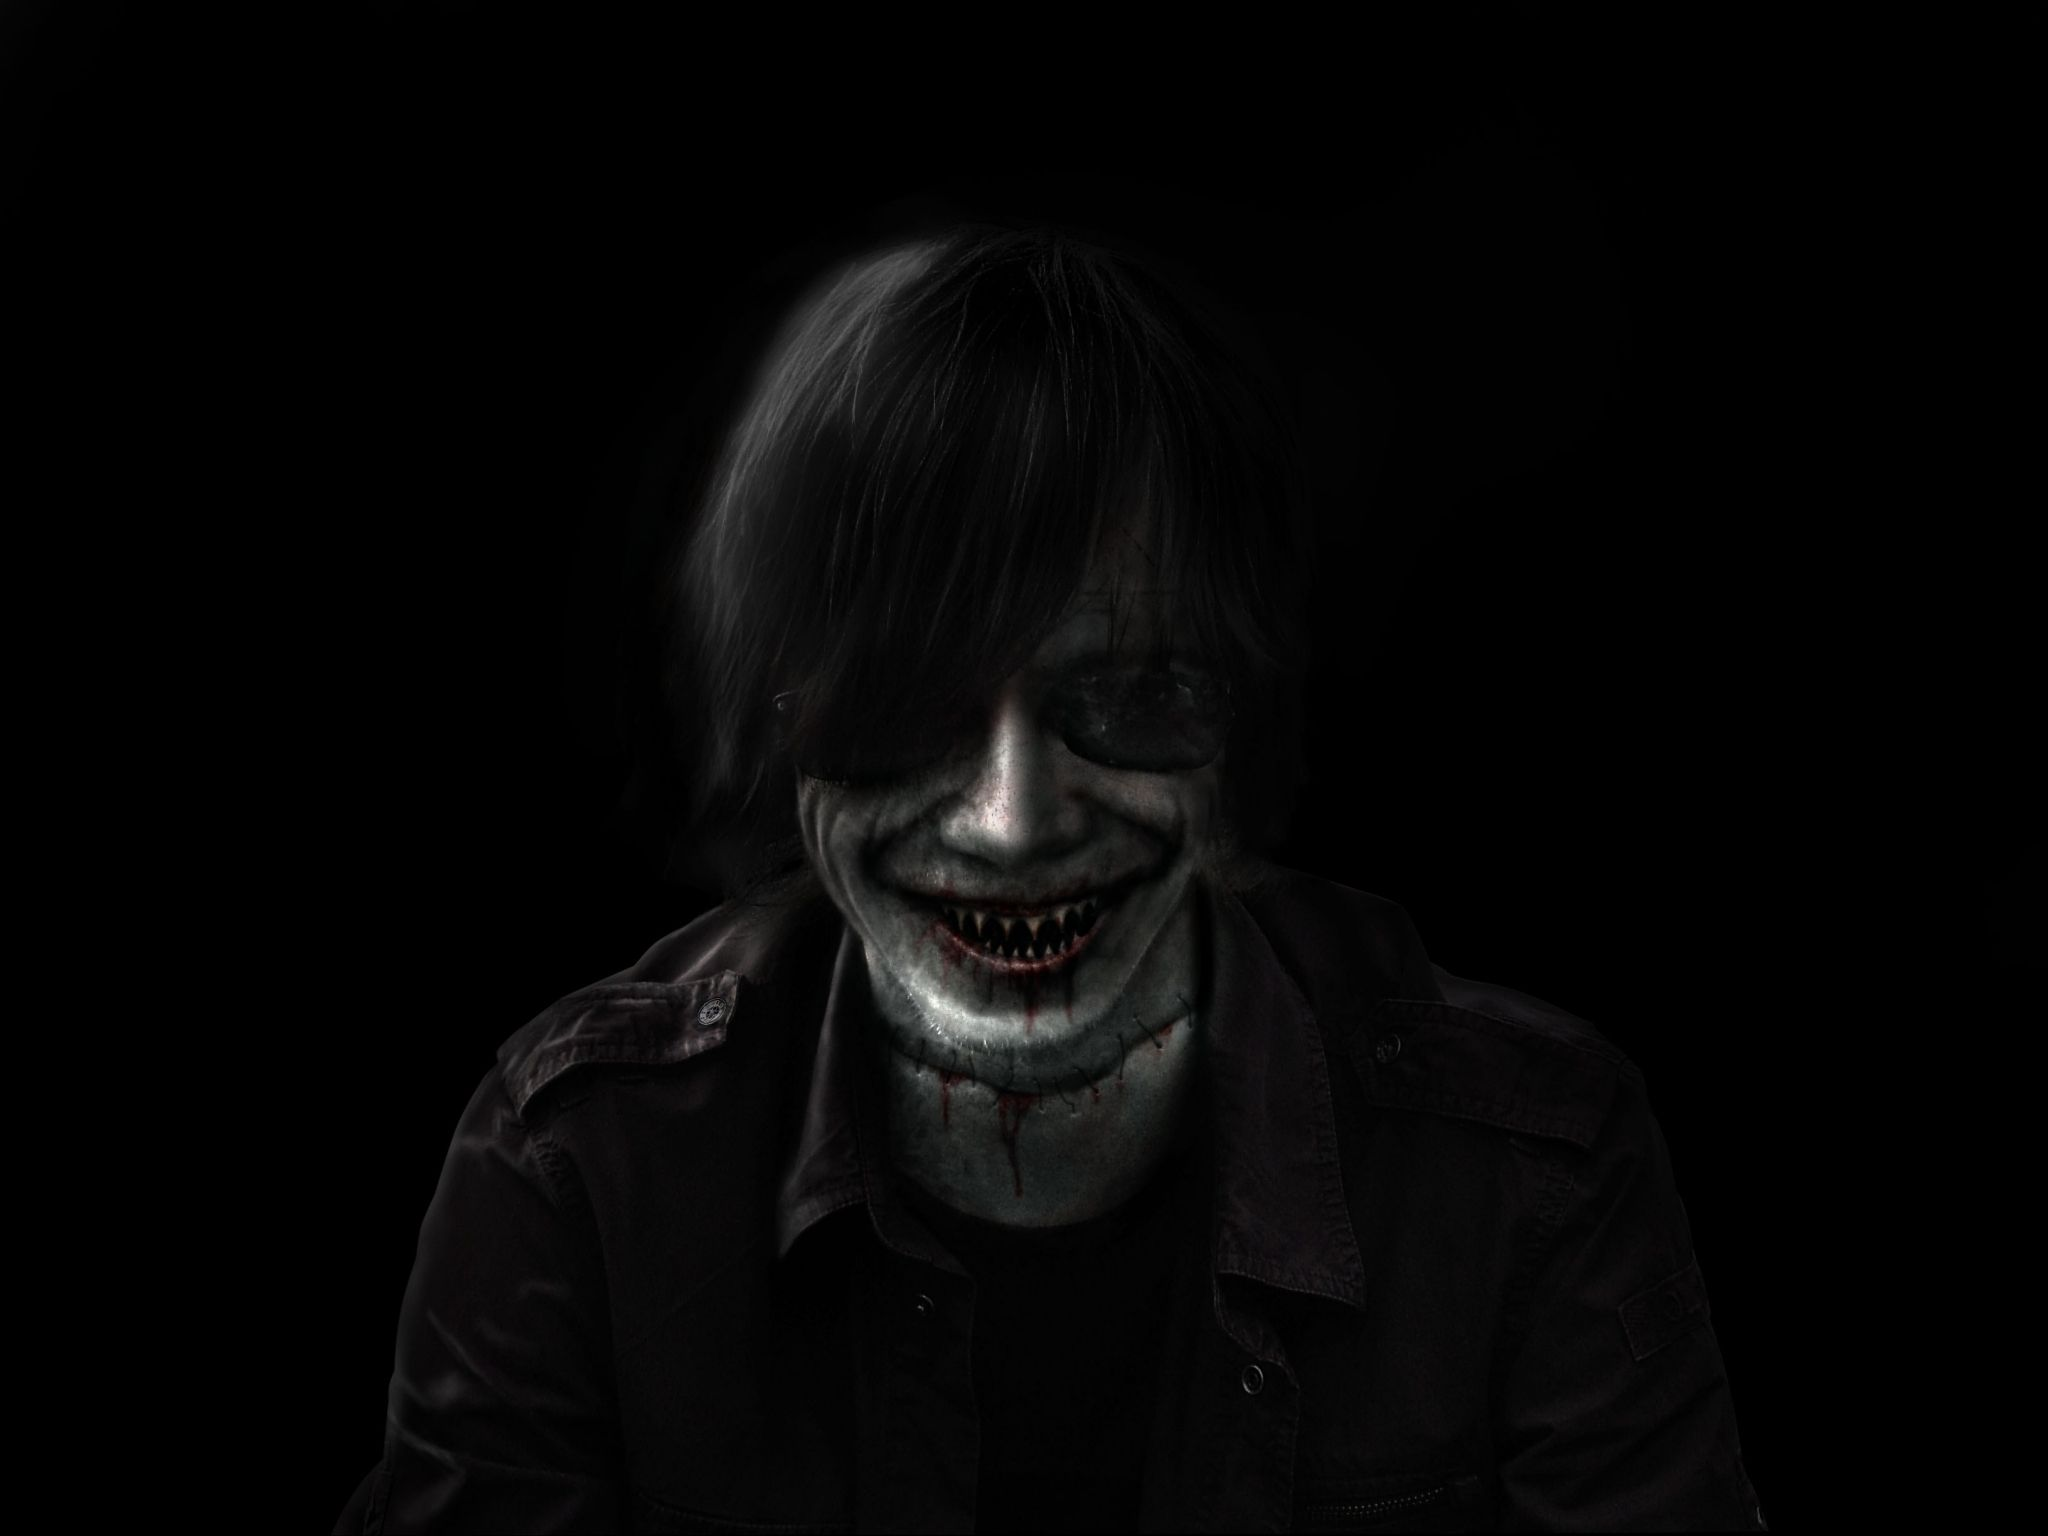 horror hd widescreen wallpapers for laptop